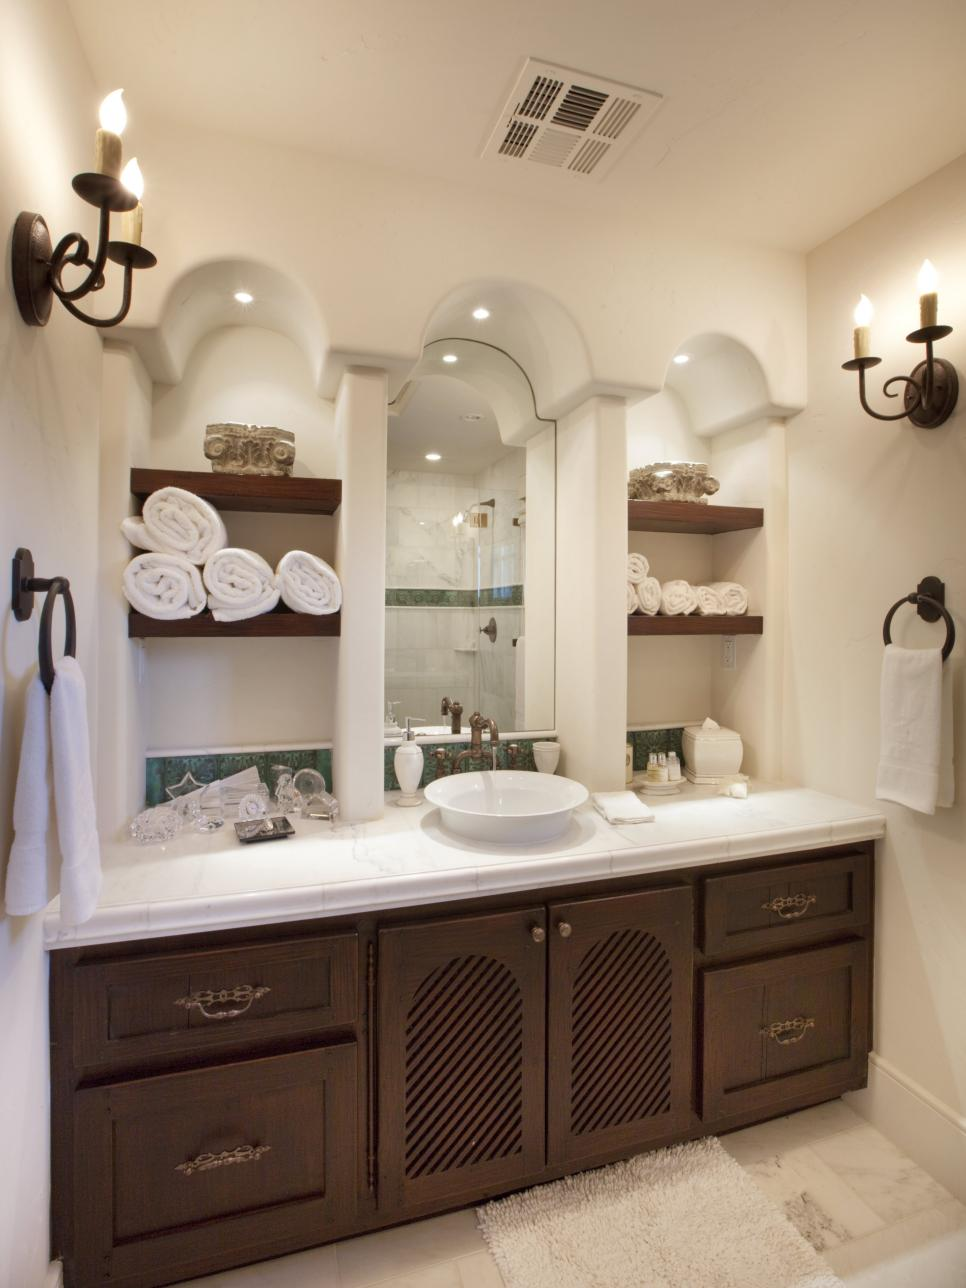 storage bathroom ideas 12 clever bathroom storage ideas hgtv 2052